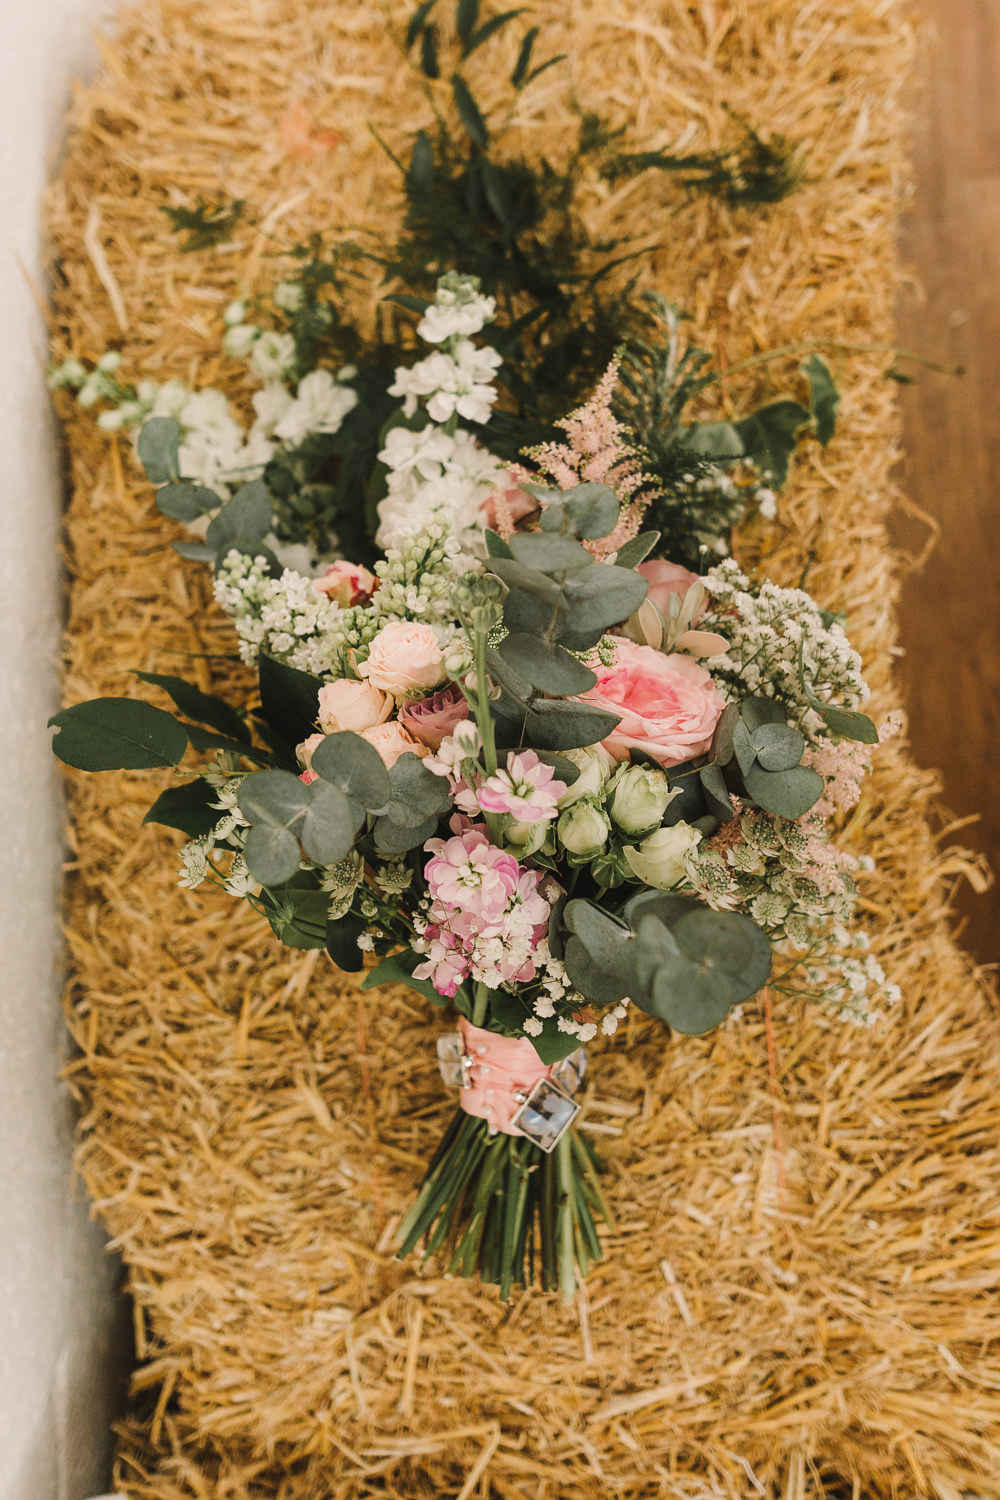 Bouquet Flowers Bride Bridal Pink Greenery Astilbe Rose Wellbeing Farm Wedding Anna Wood Photography